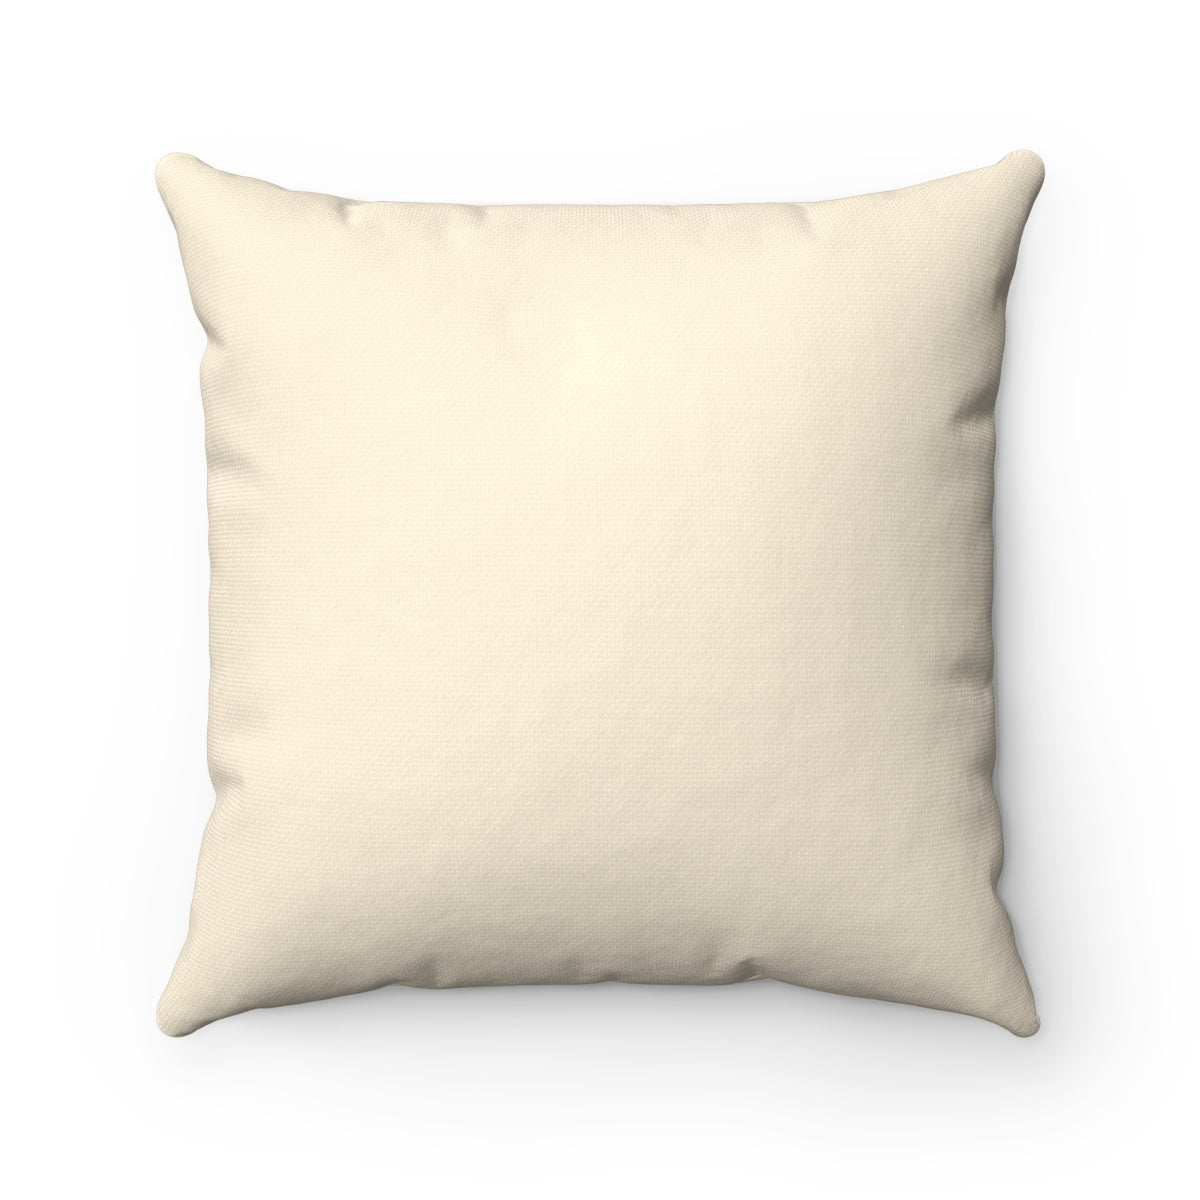 It's Fall Ya'll Orange Quote Spun Polyester Square Pillow